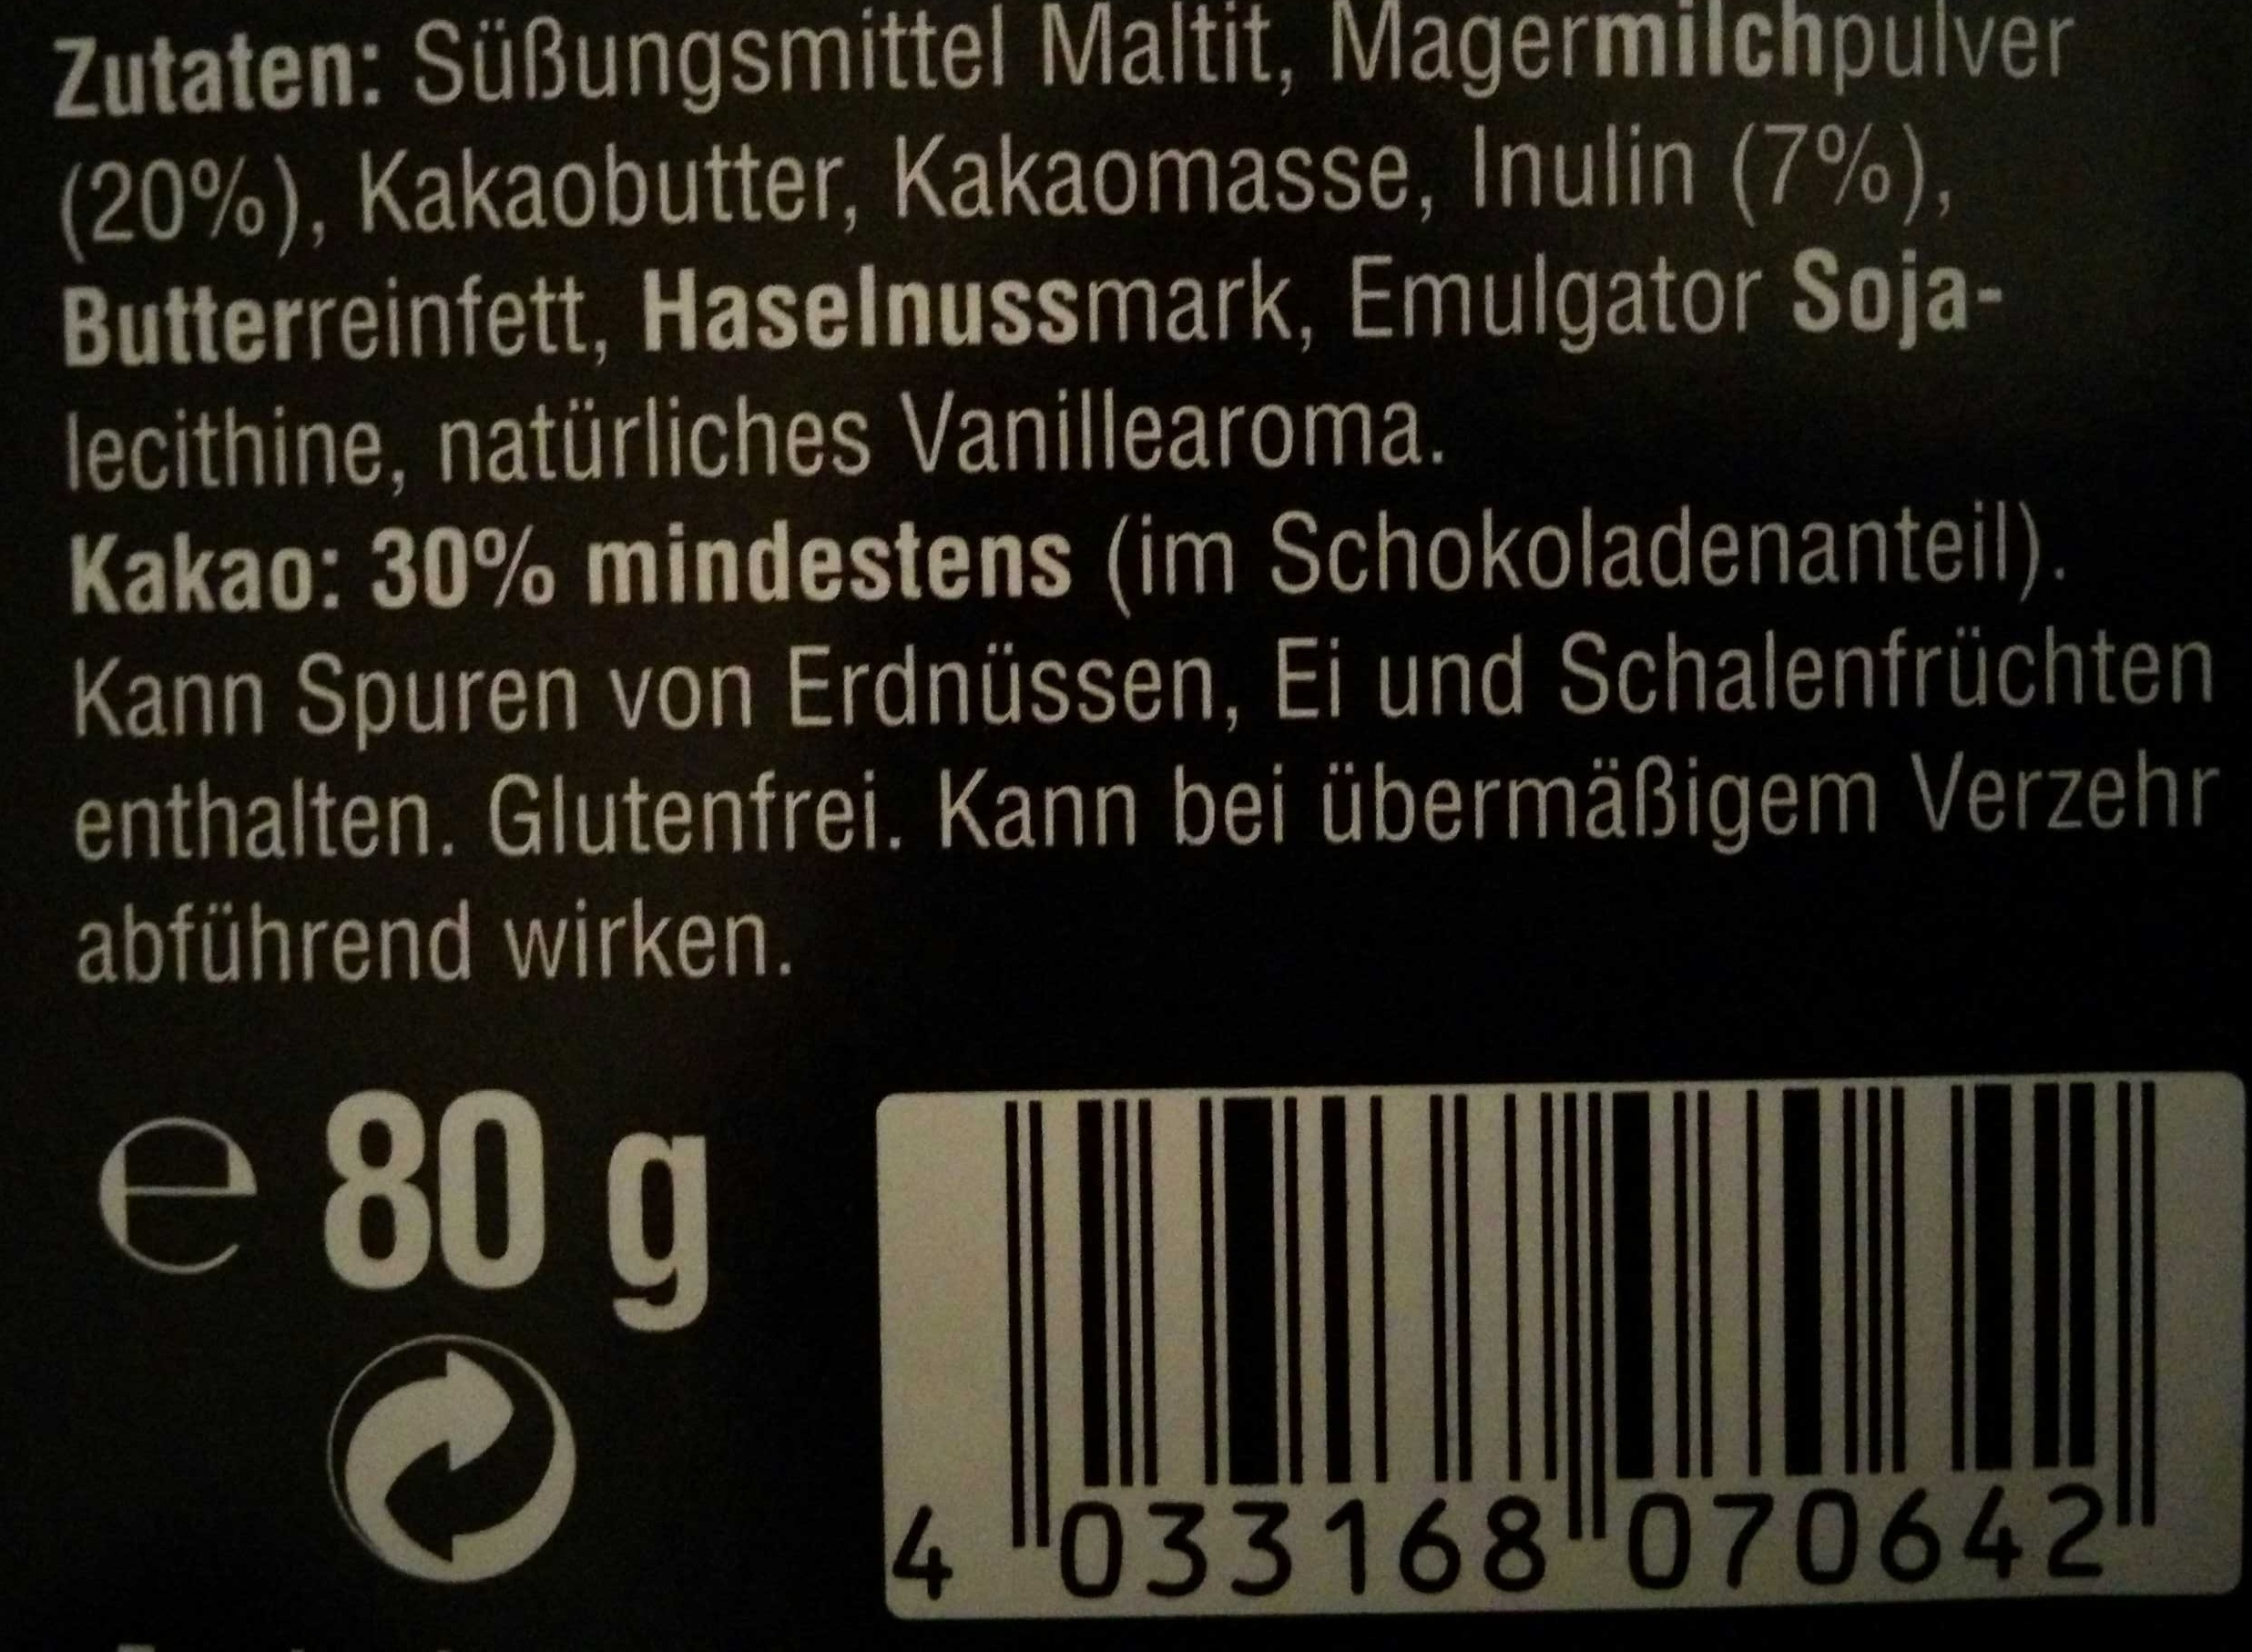 Vollmilch - Ingredients - de